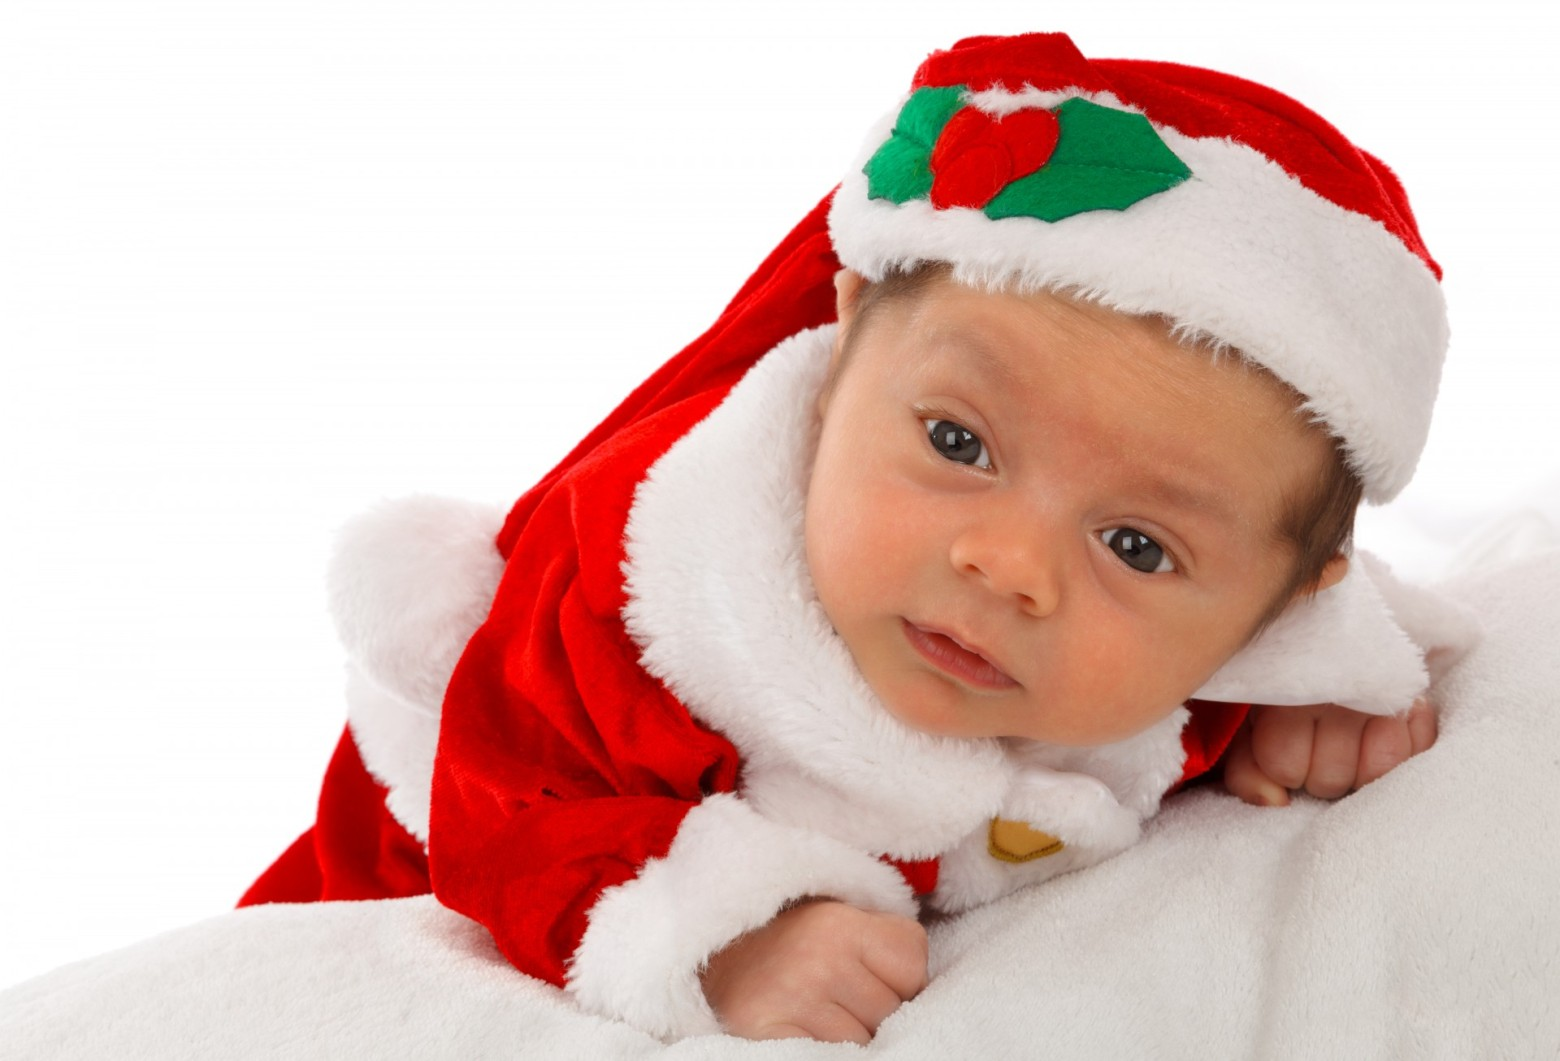 Image De Bebe En Pere Noel.Adorable Bebe Portant Un Bonnet De Pere Noel Images Photos